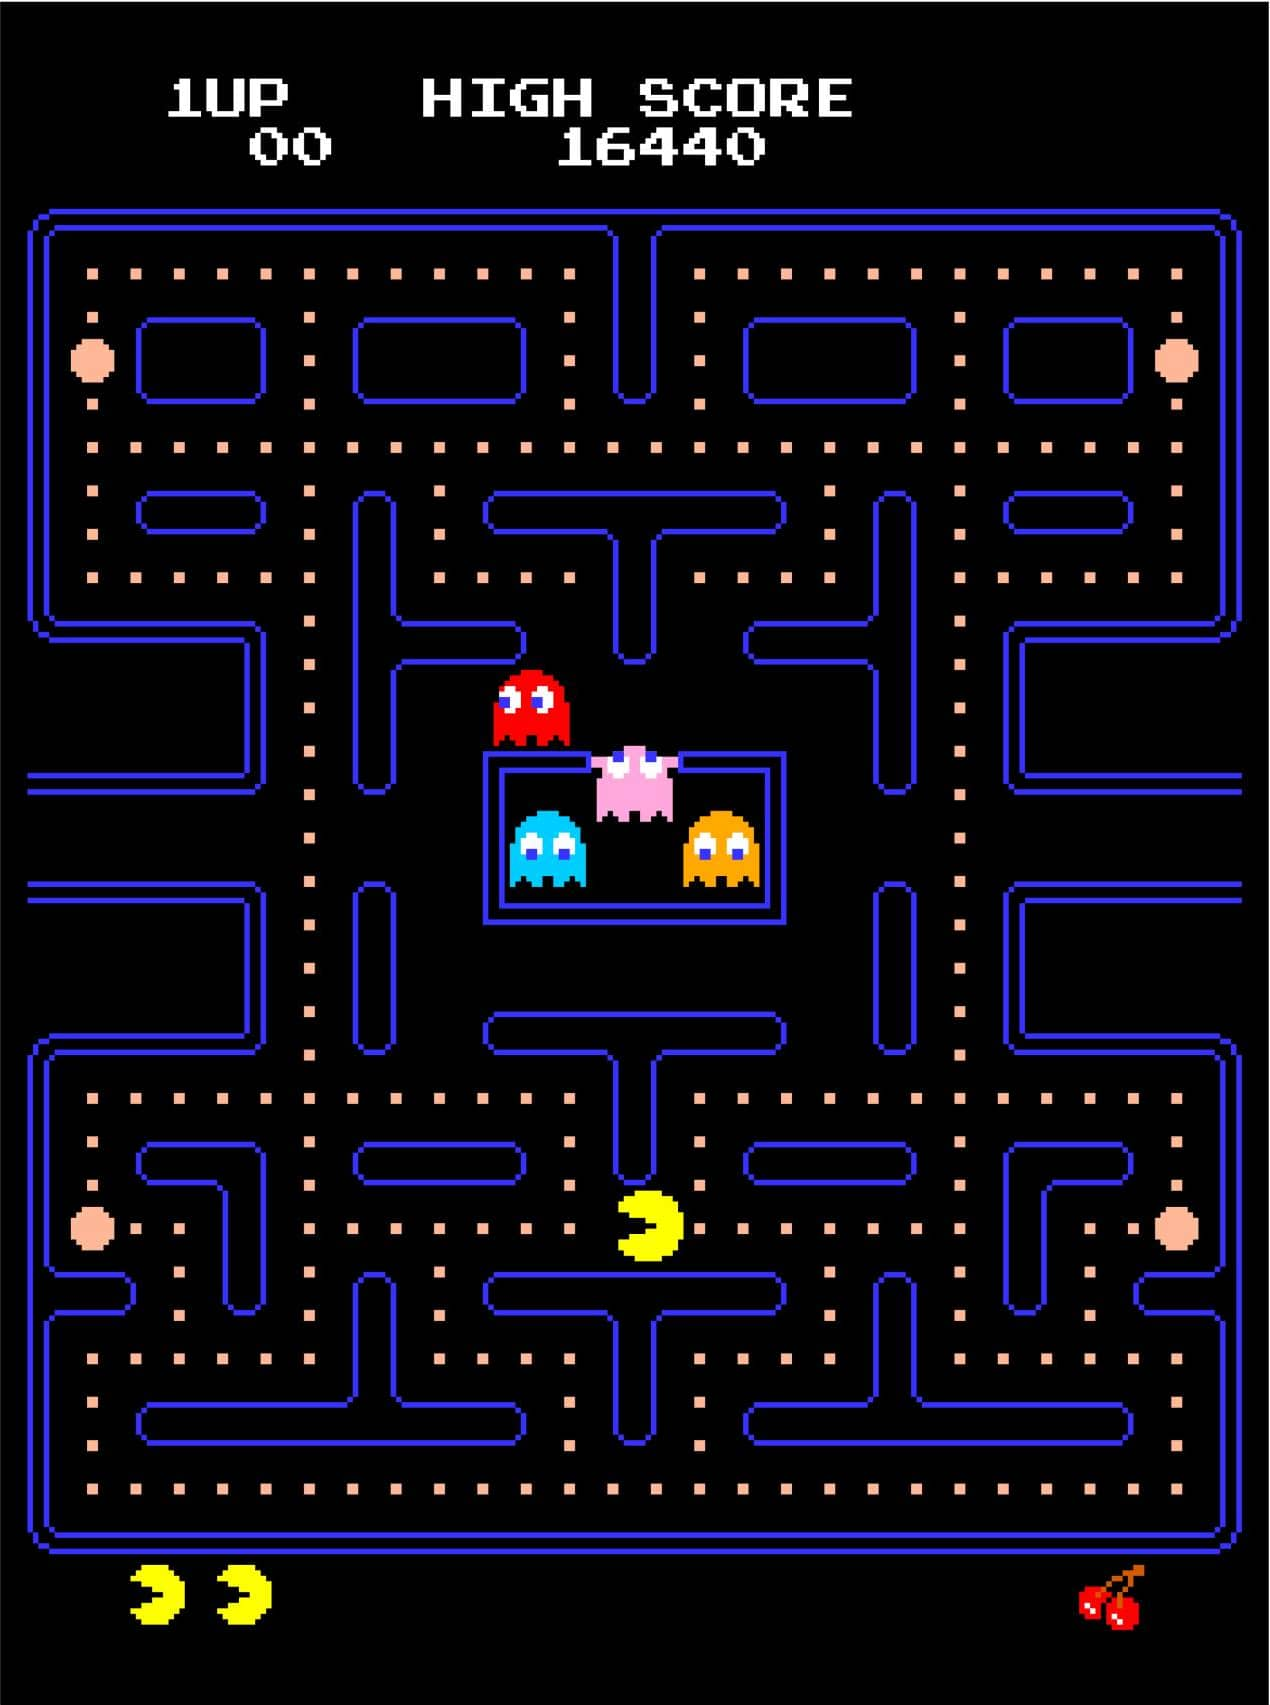 In Pac-Man, the player attempts to eat all of the dots placed in an enclosed maze while avoiding four colored ghosts that each have their own unique